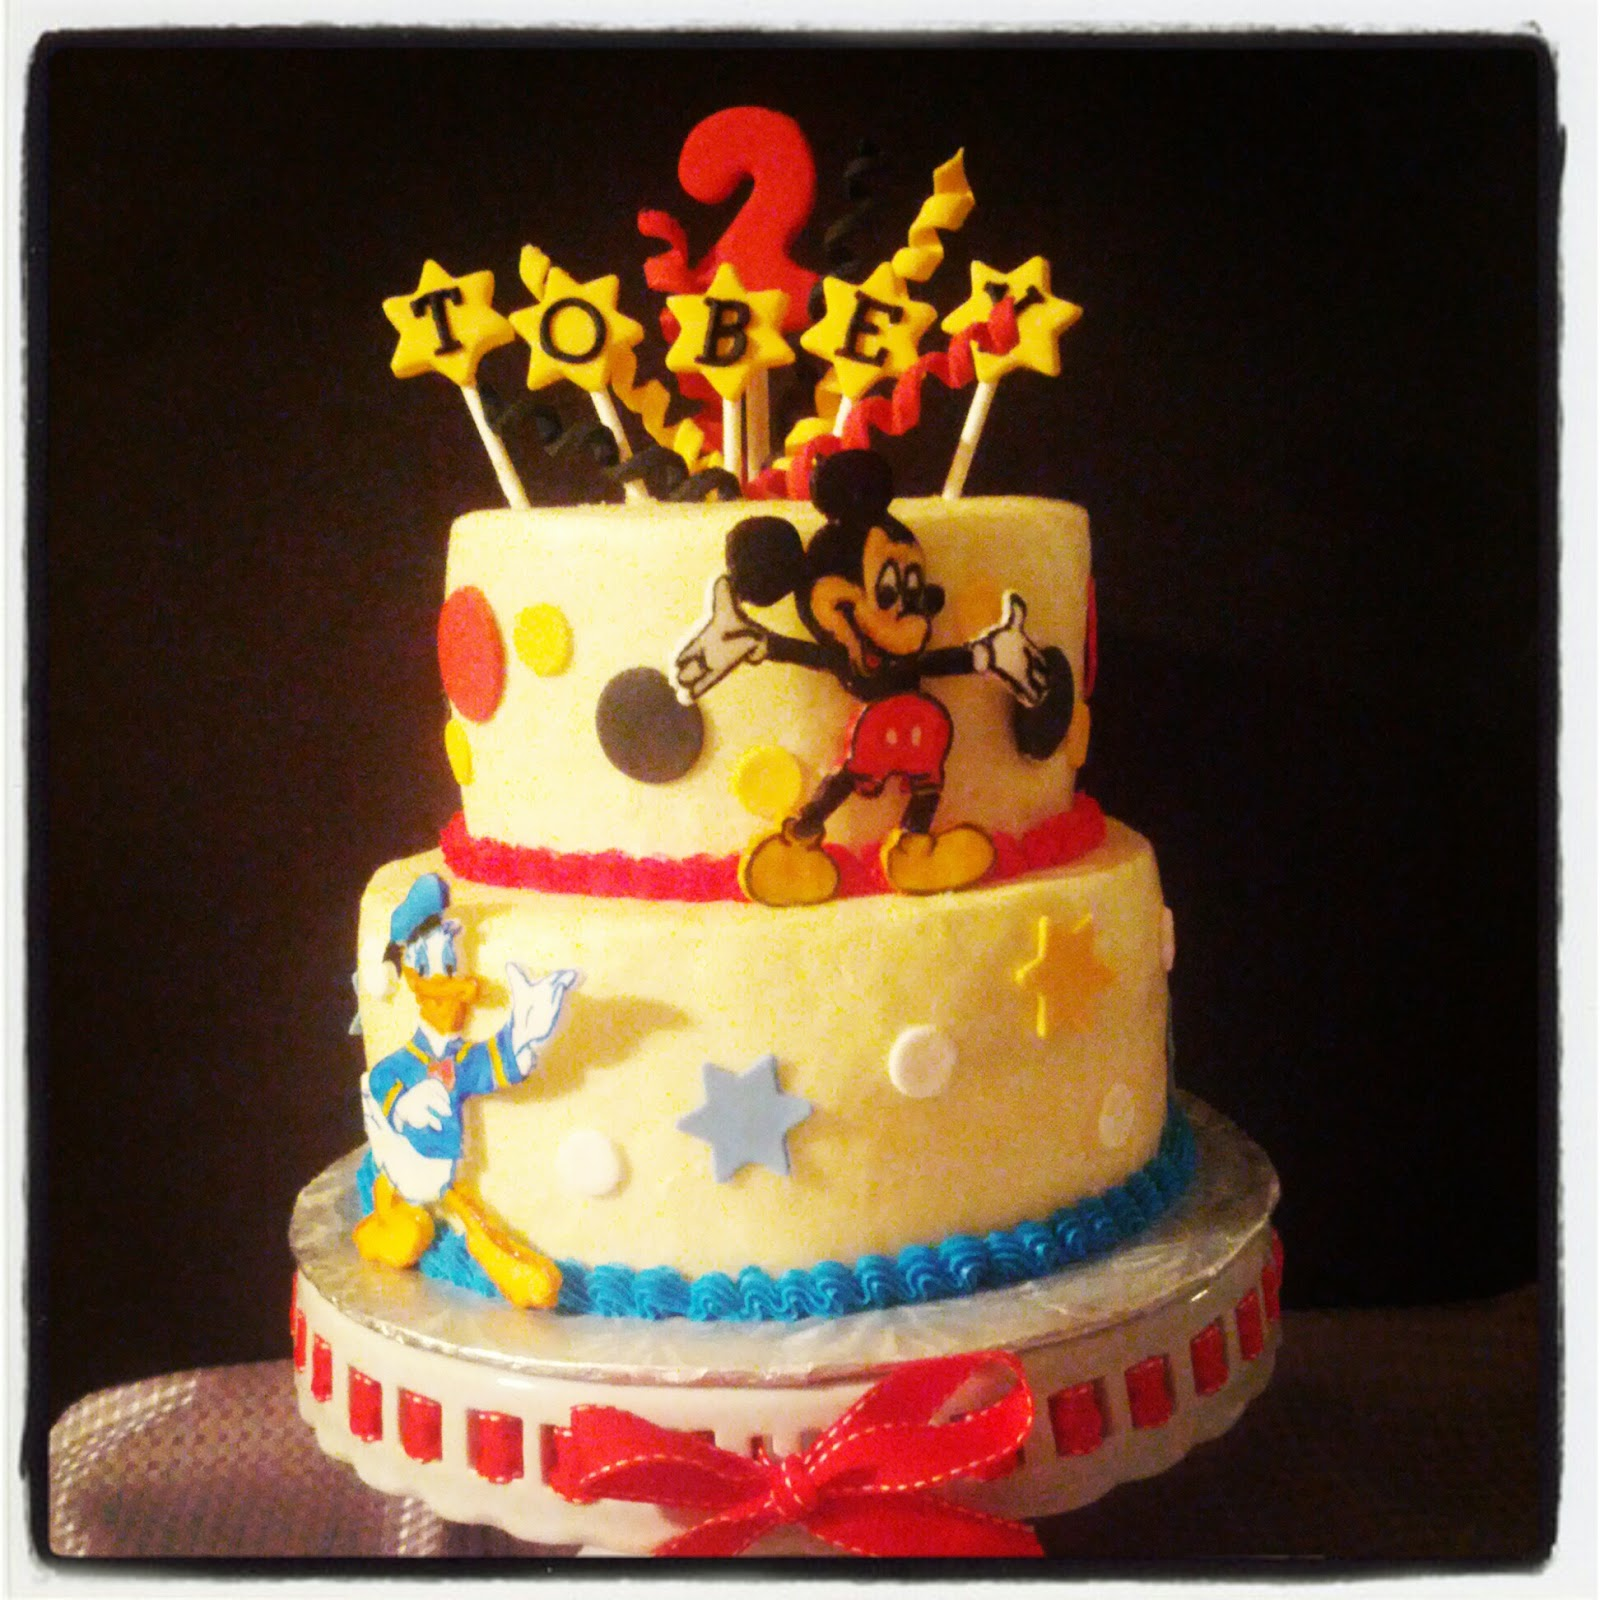 Second Generation Cake Design: Mickey Mouse & Donald Duck Birthday Cake